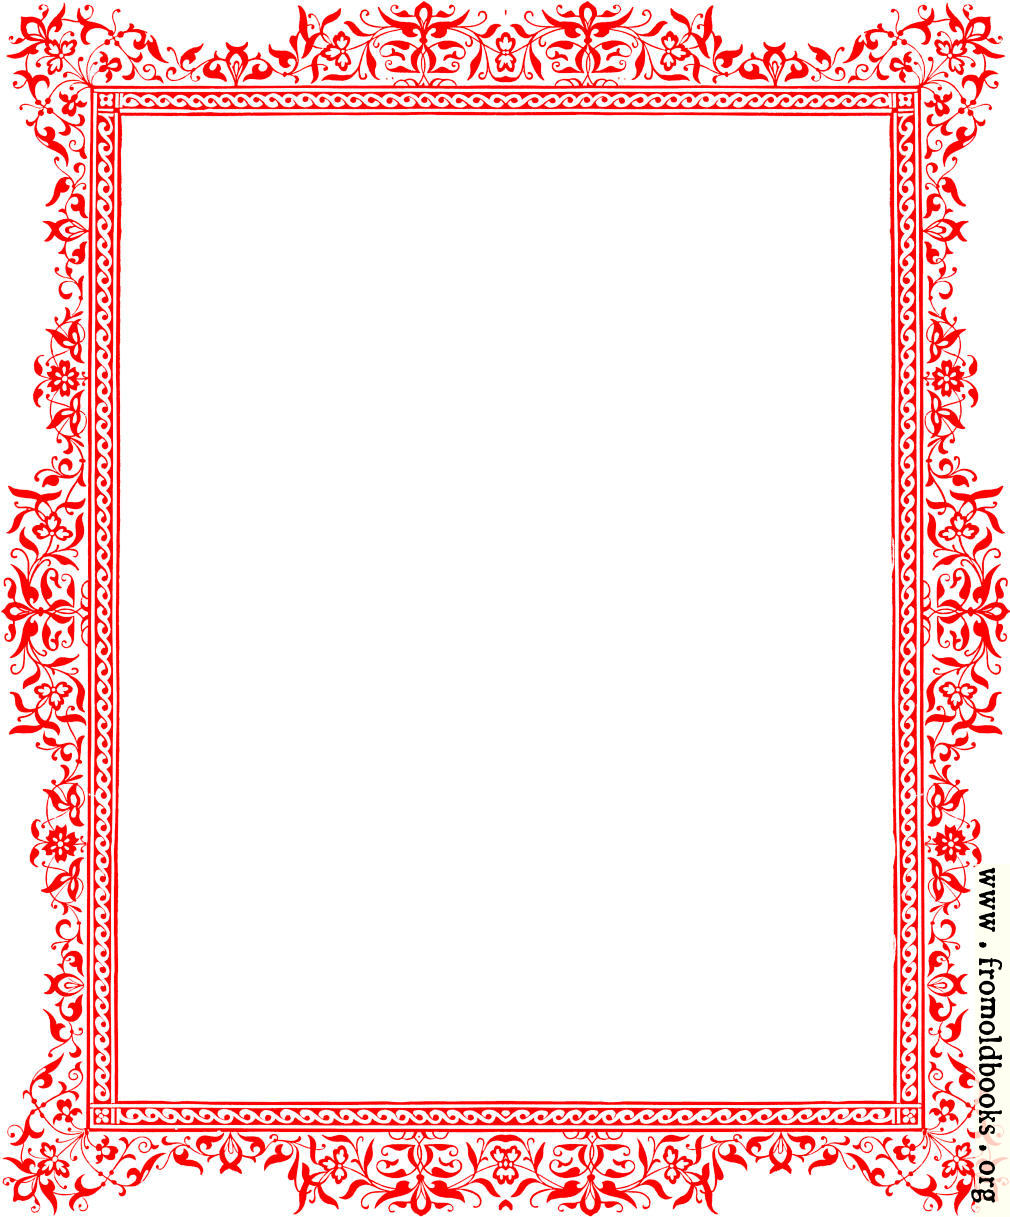 Red border from Page 27 [image 415x500 pixels]